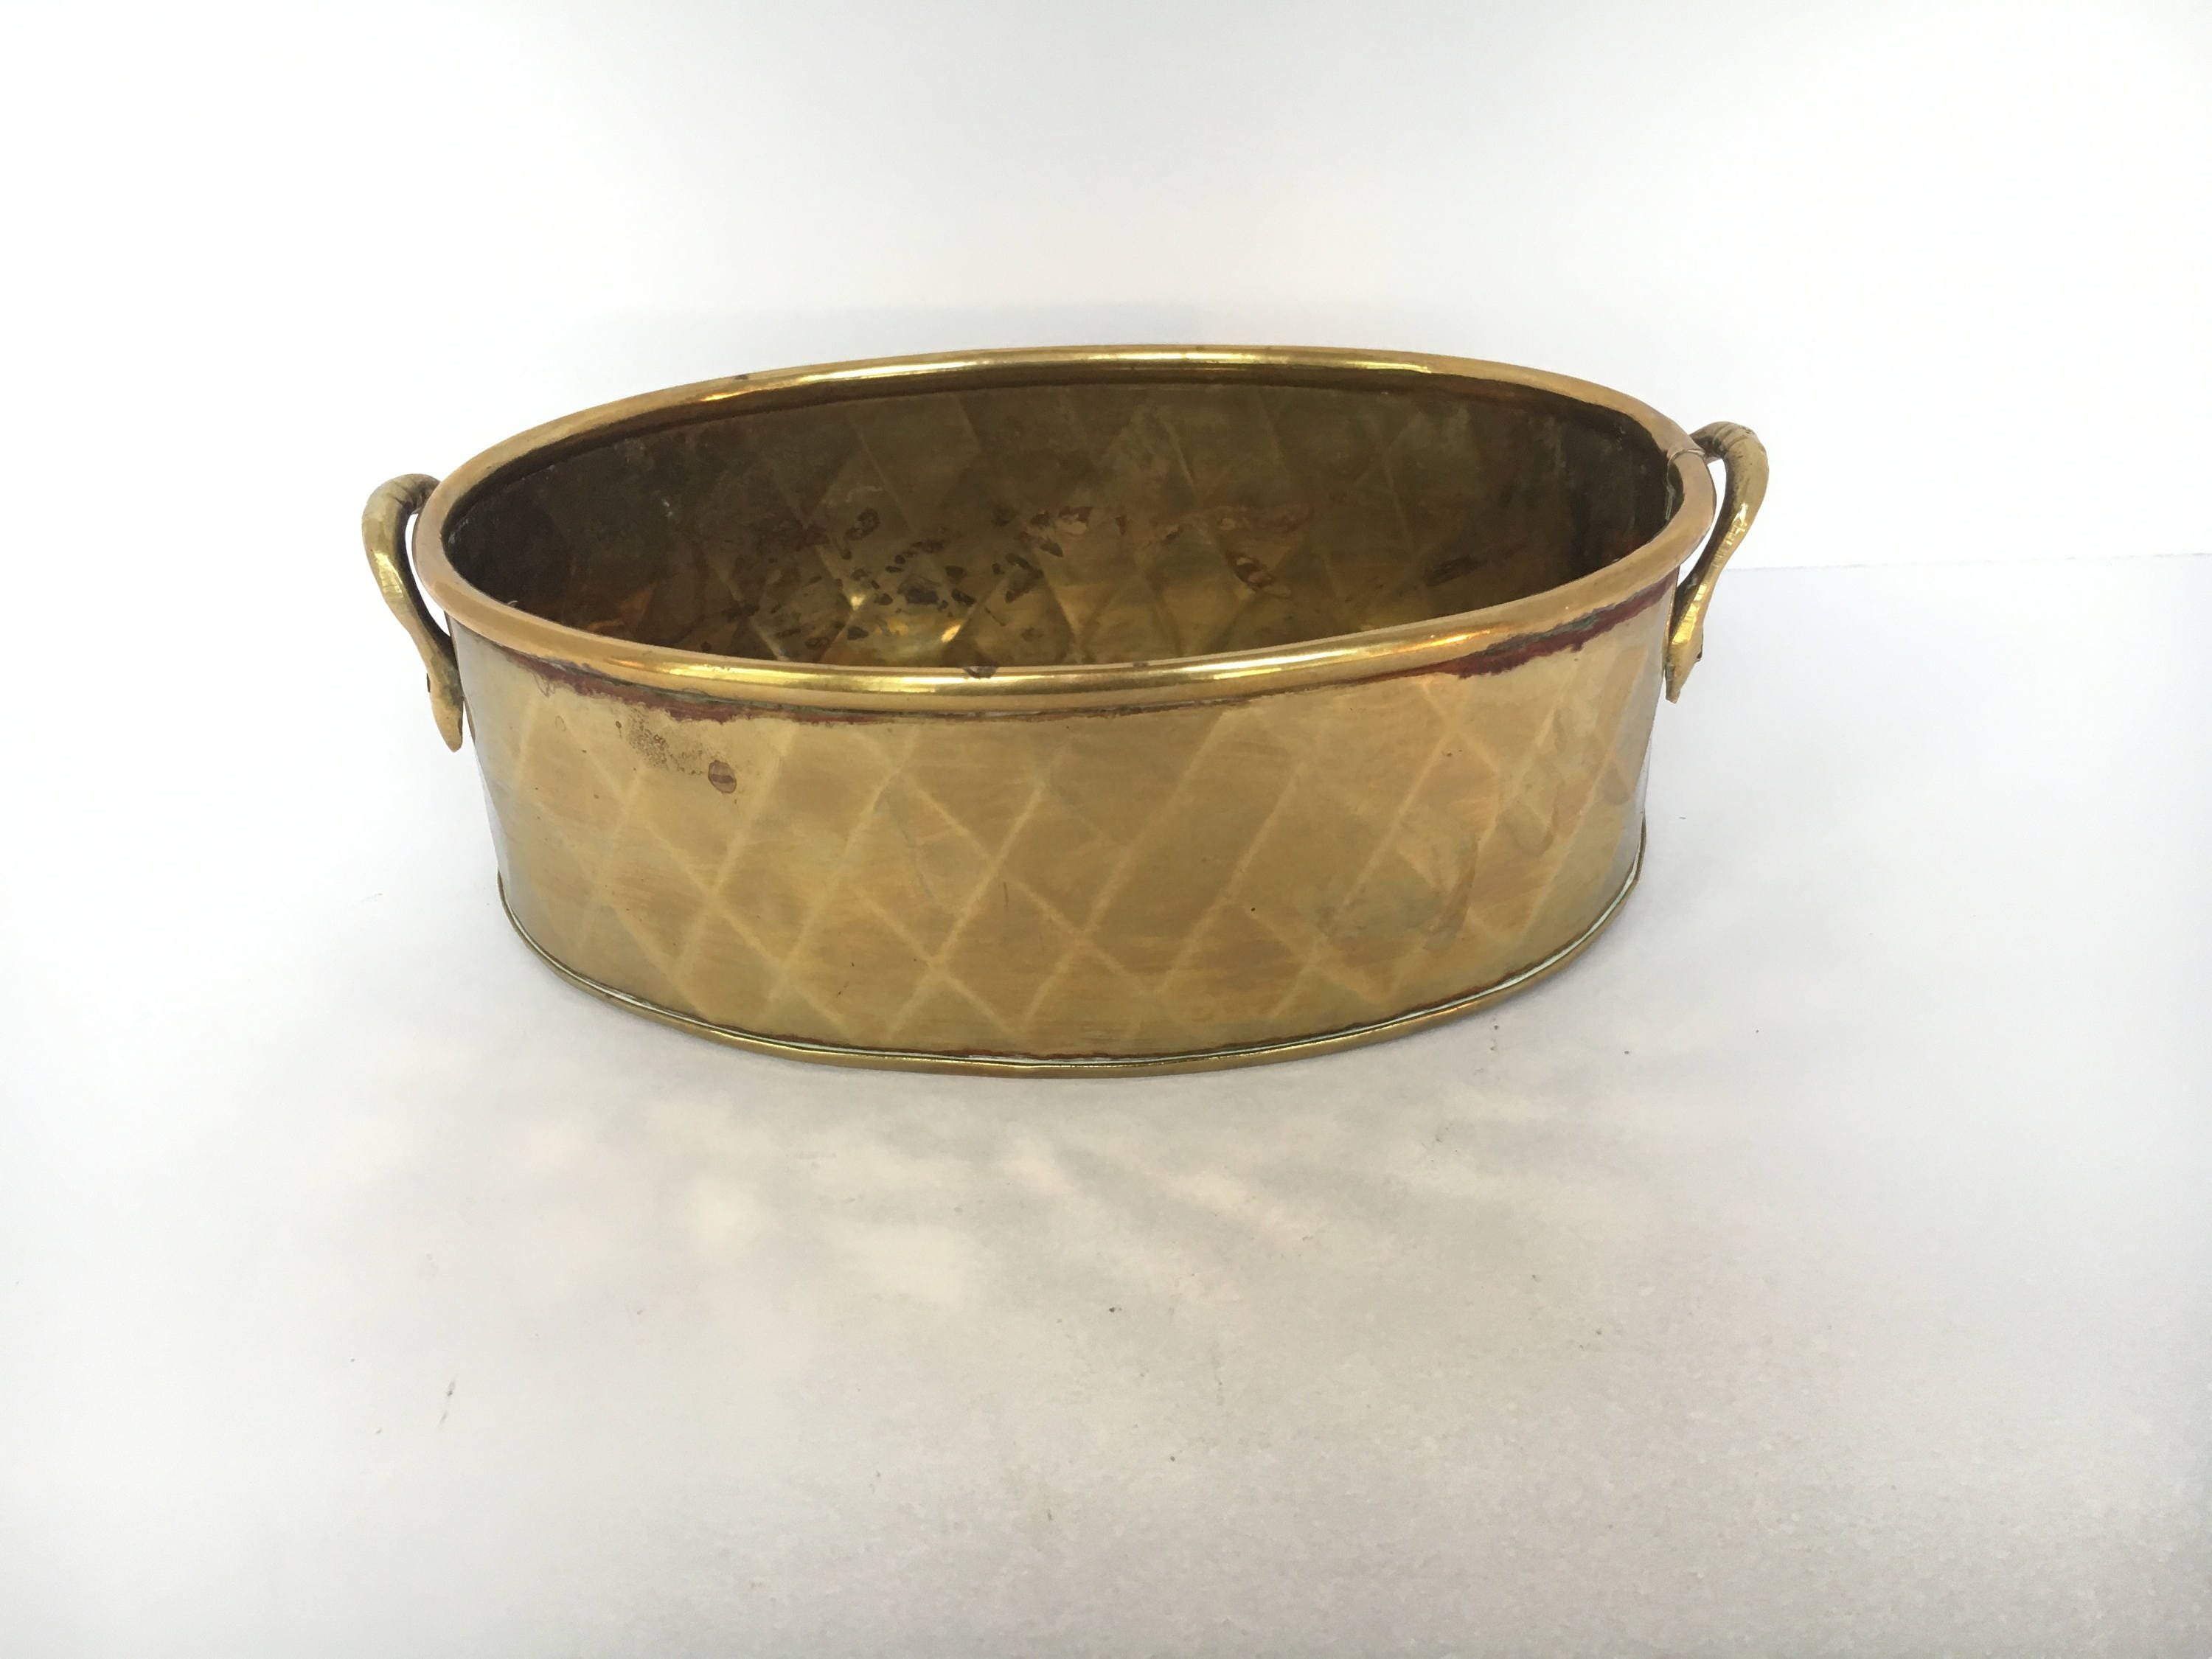 Small Brass Oval Planter W Trellis Design 2 Handles Made In Etsy